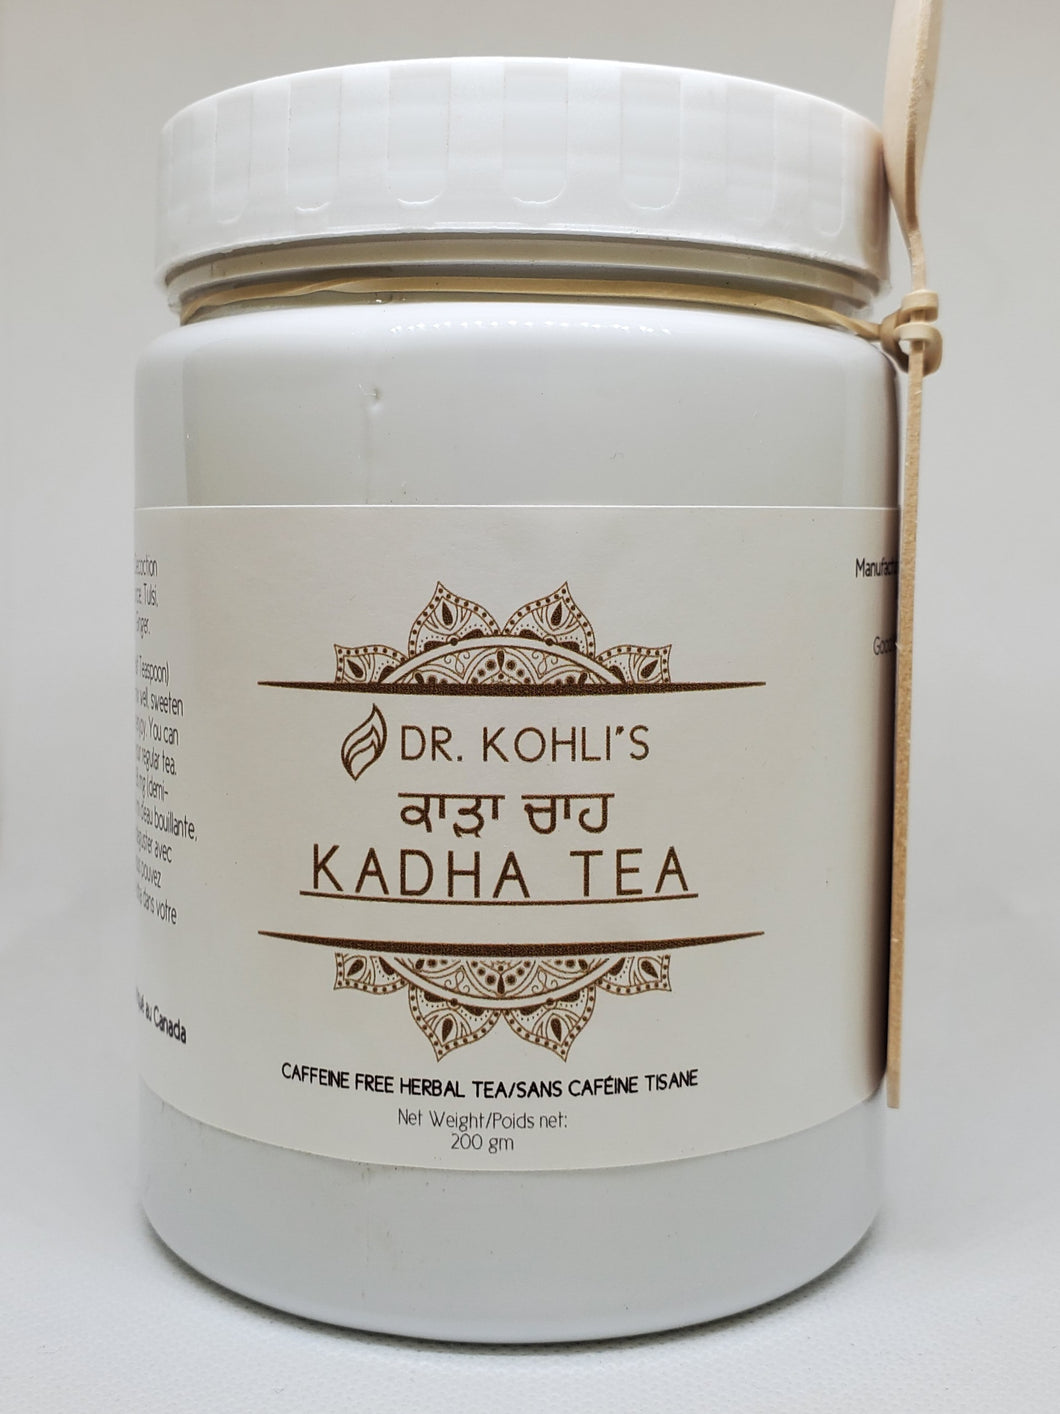 KADHA TEA - Dr. Kohli's Herbal Products